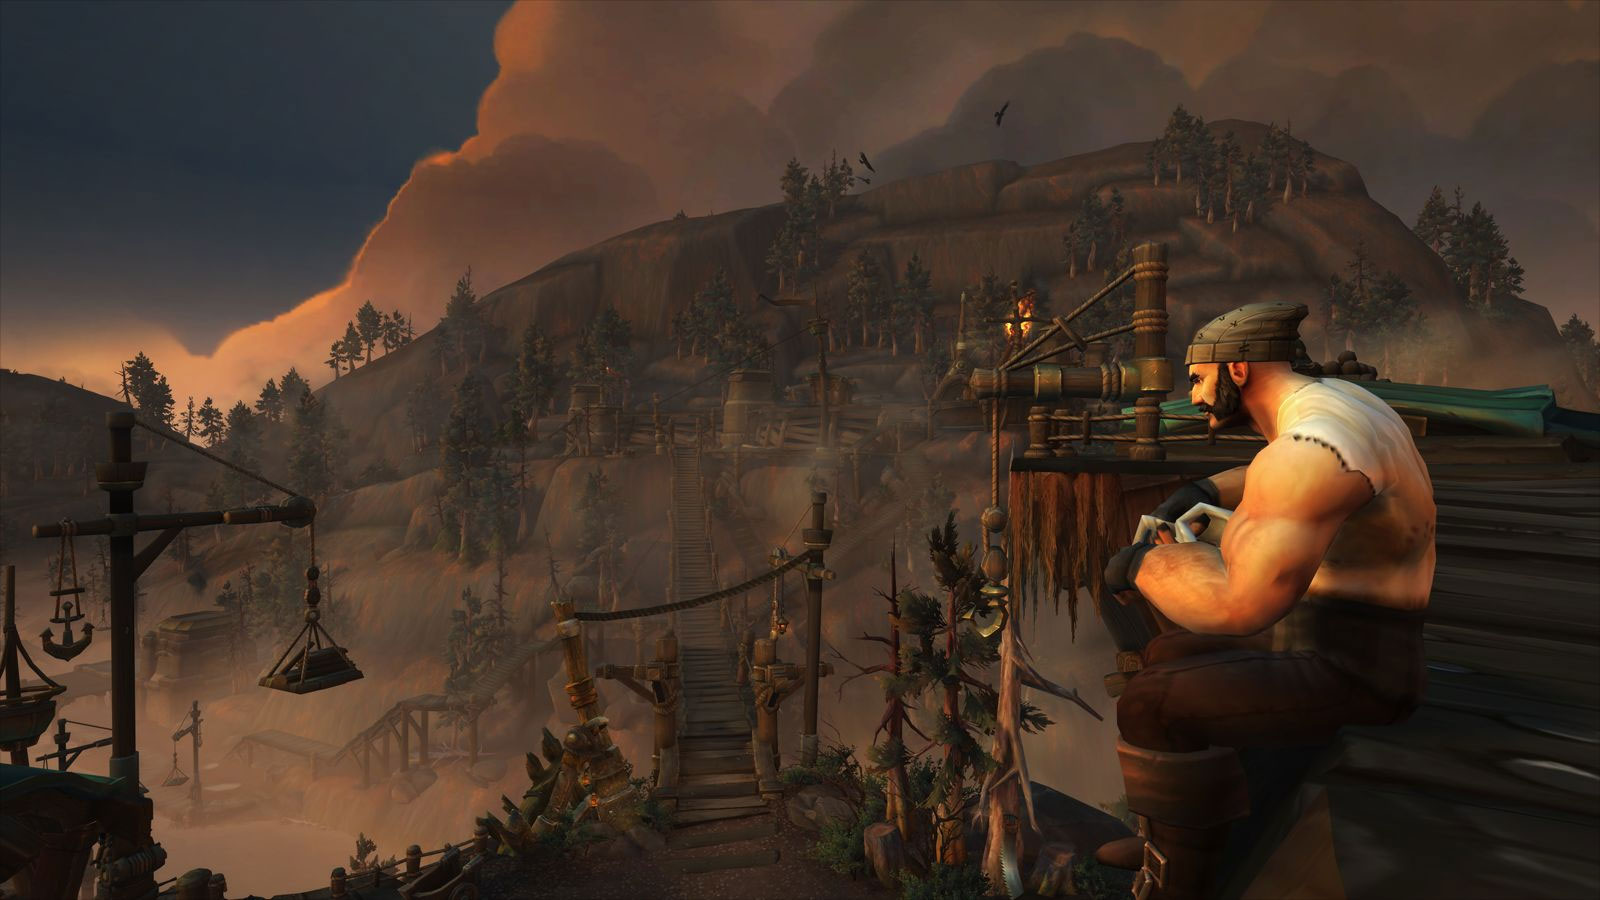 World of Warcraft has ditched the upfront fee for new players